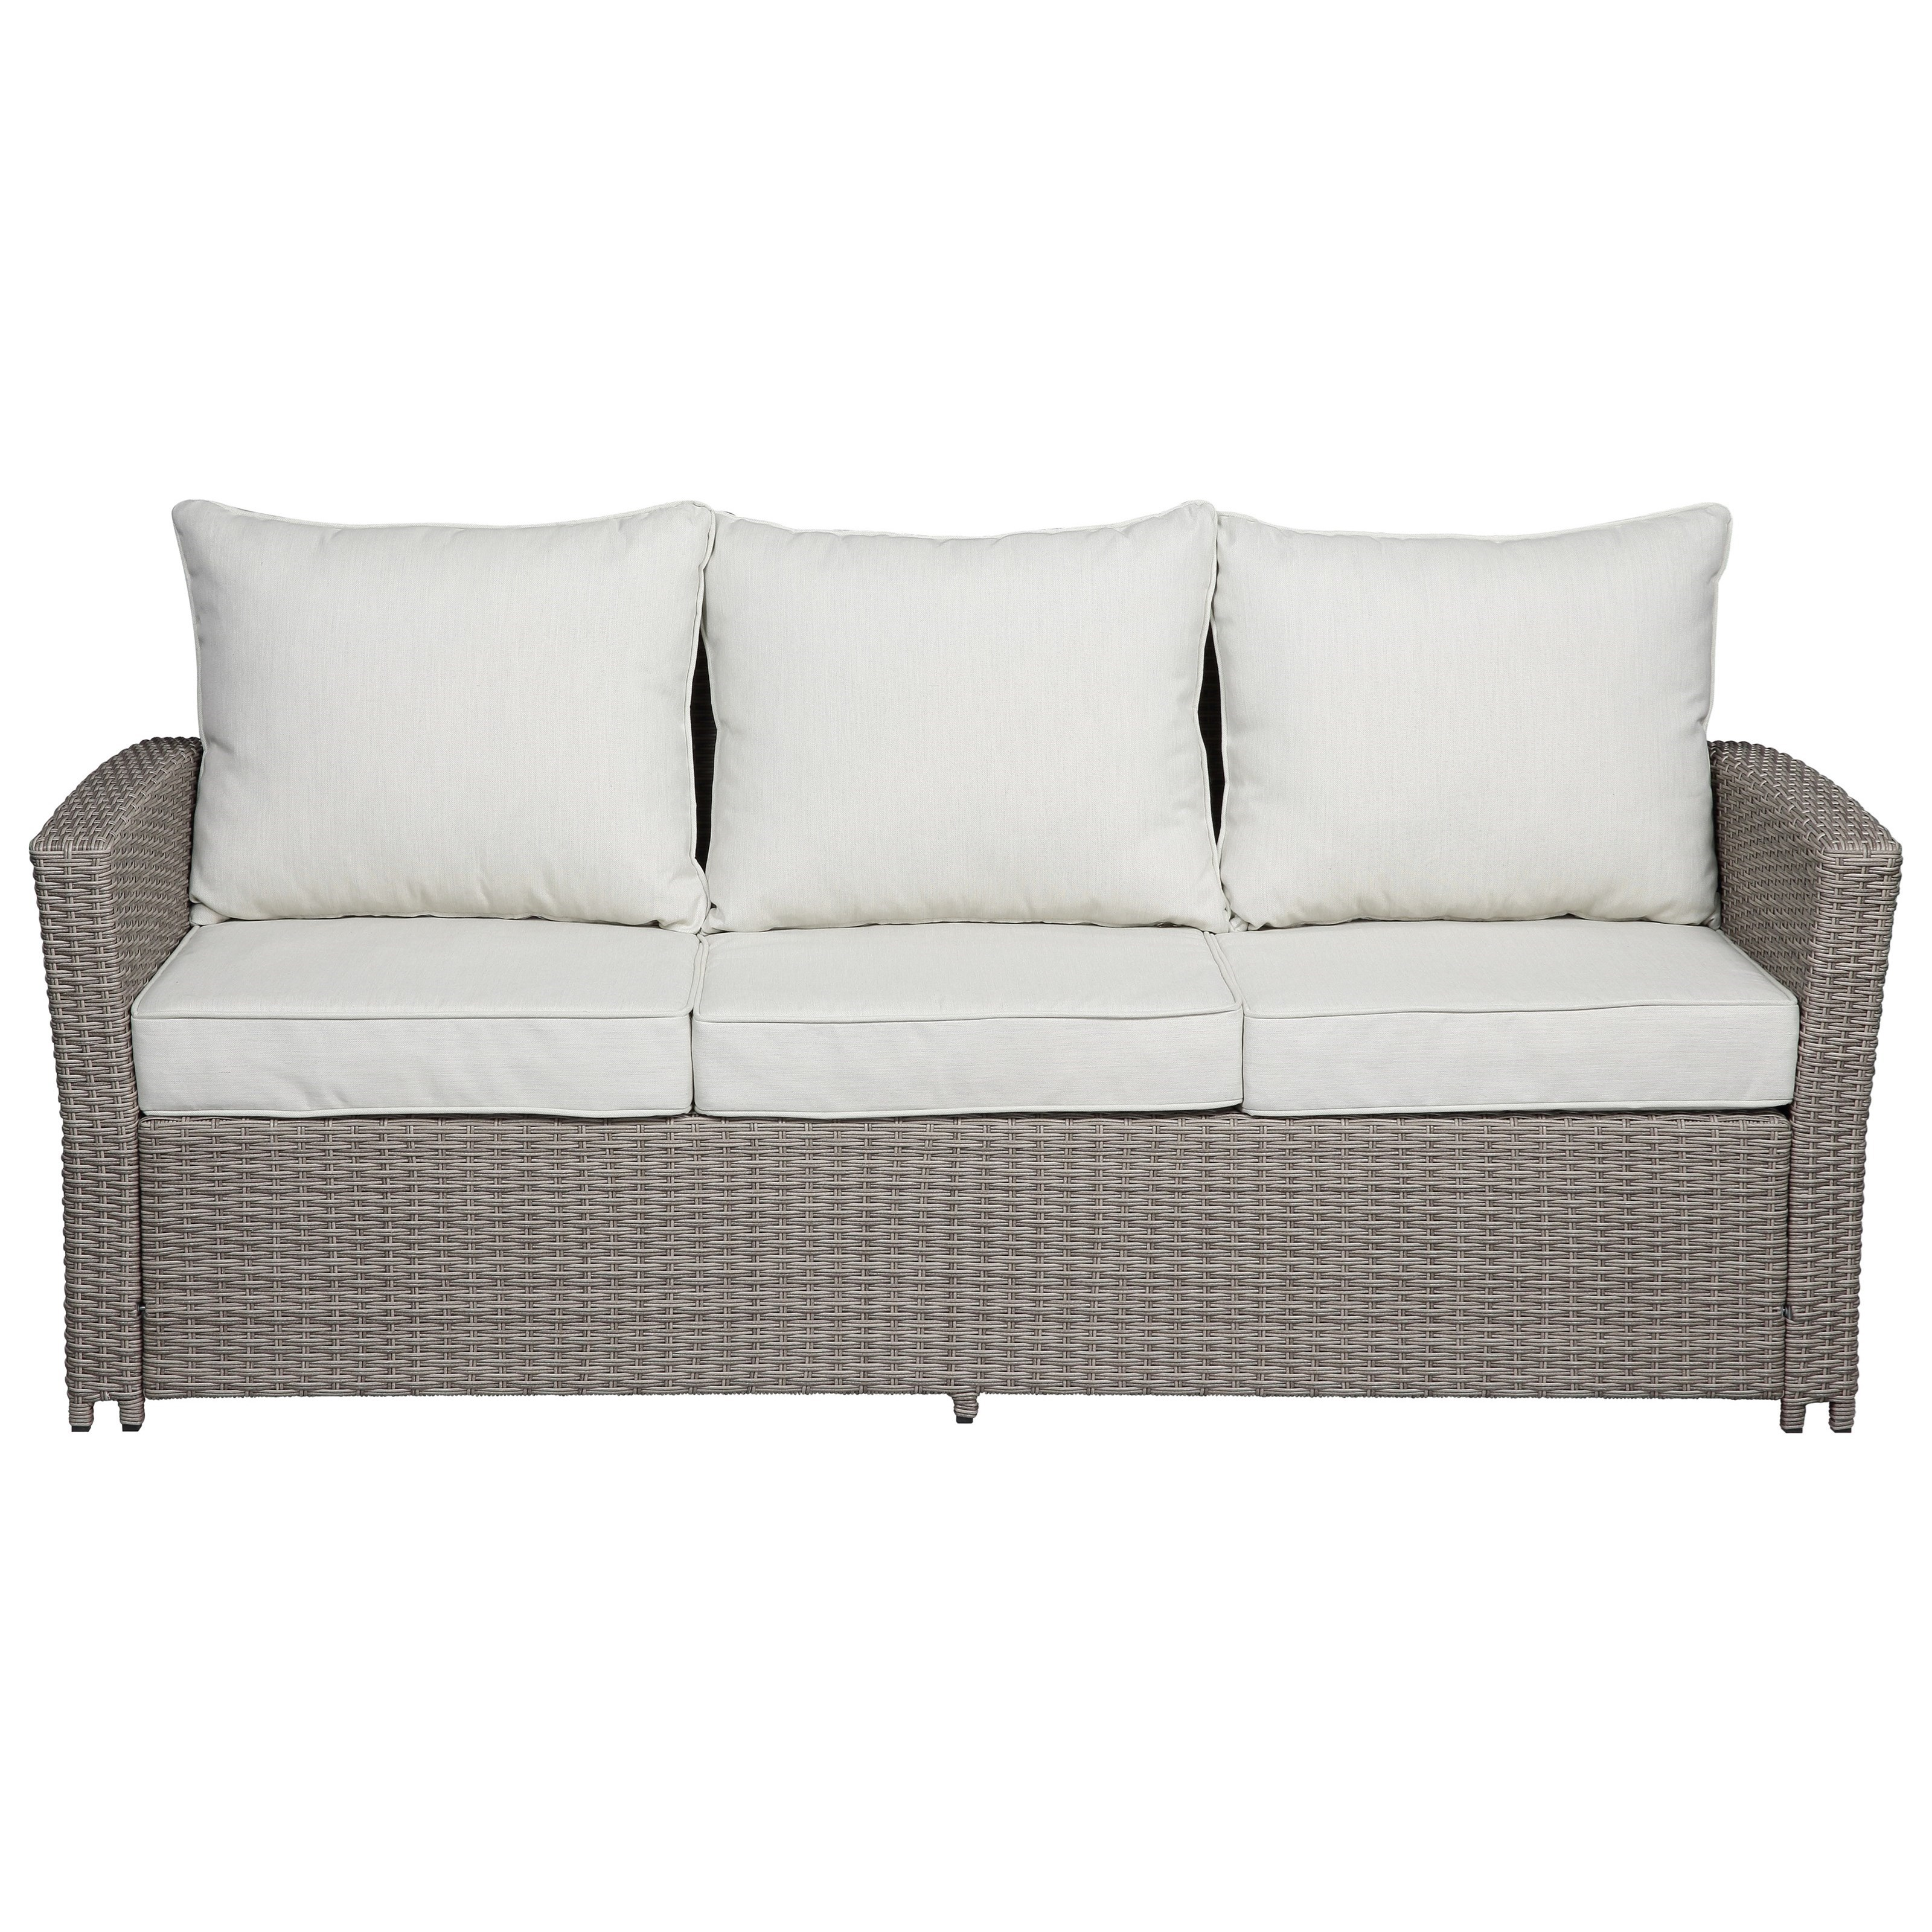 Tahan Outdoor Sofa by Acme Furniture at Rooms for Less